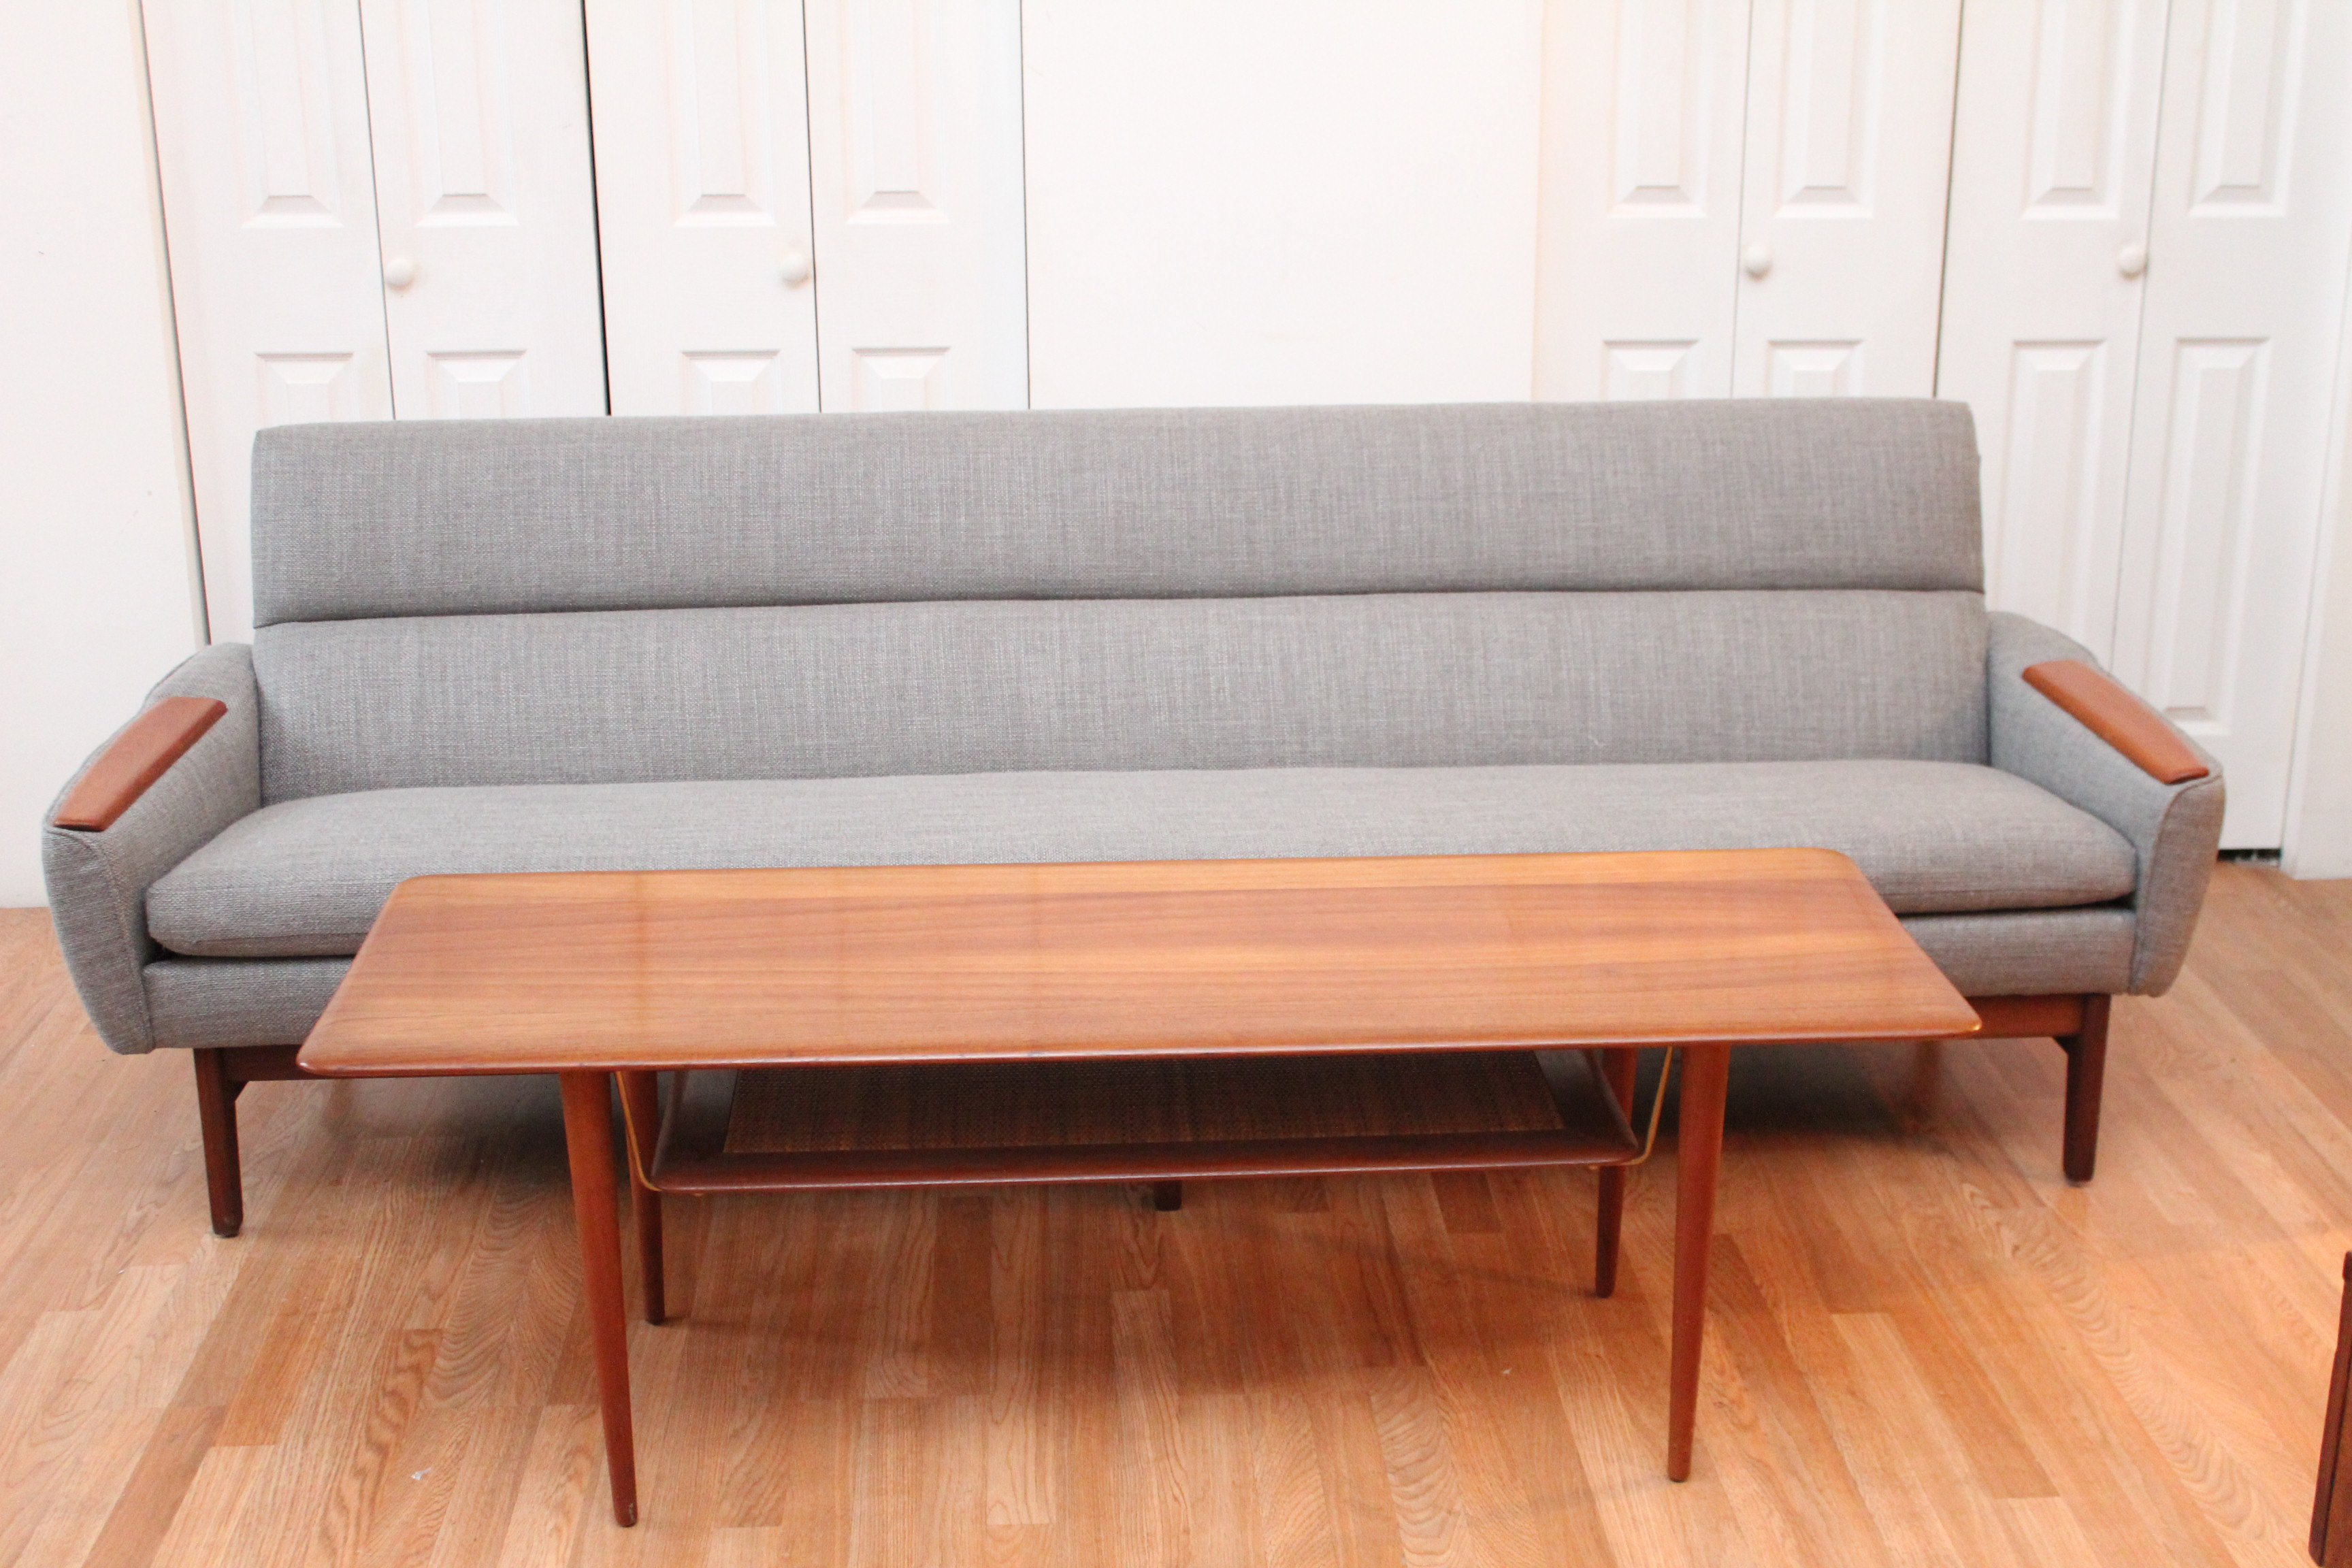 Mid century modern danish sofa with teak armrests an for Mid century modern danish furniture